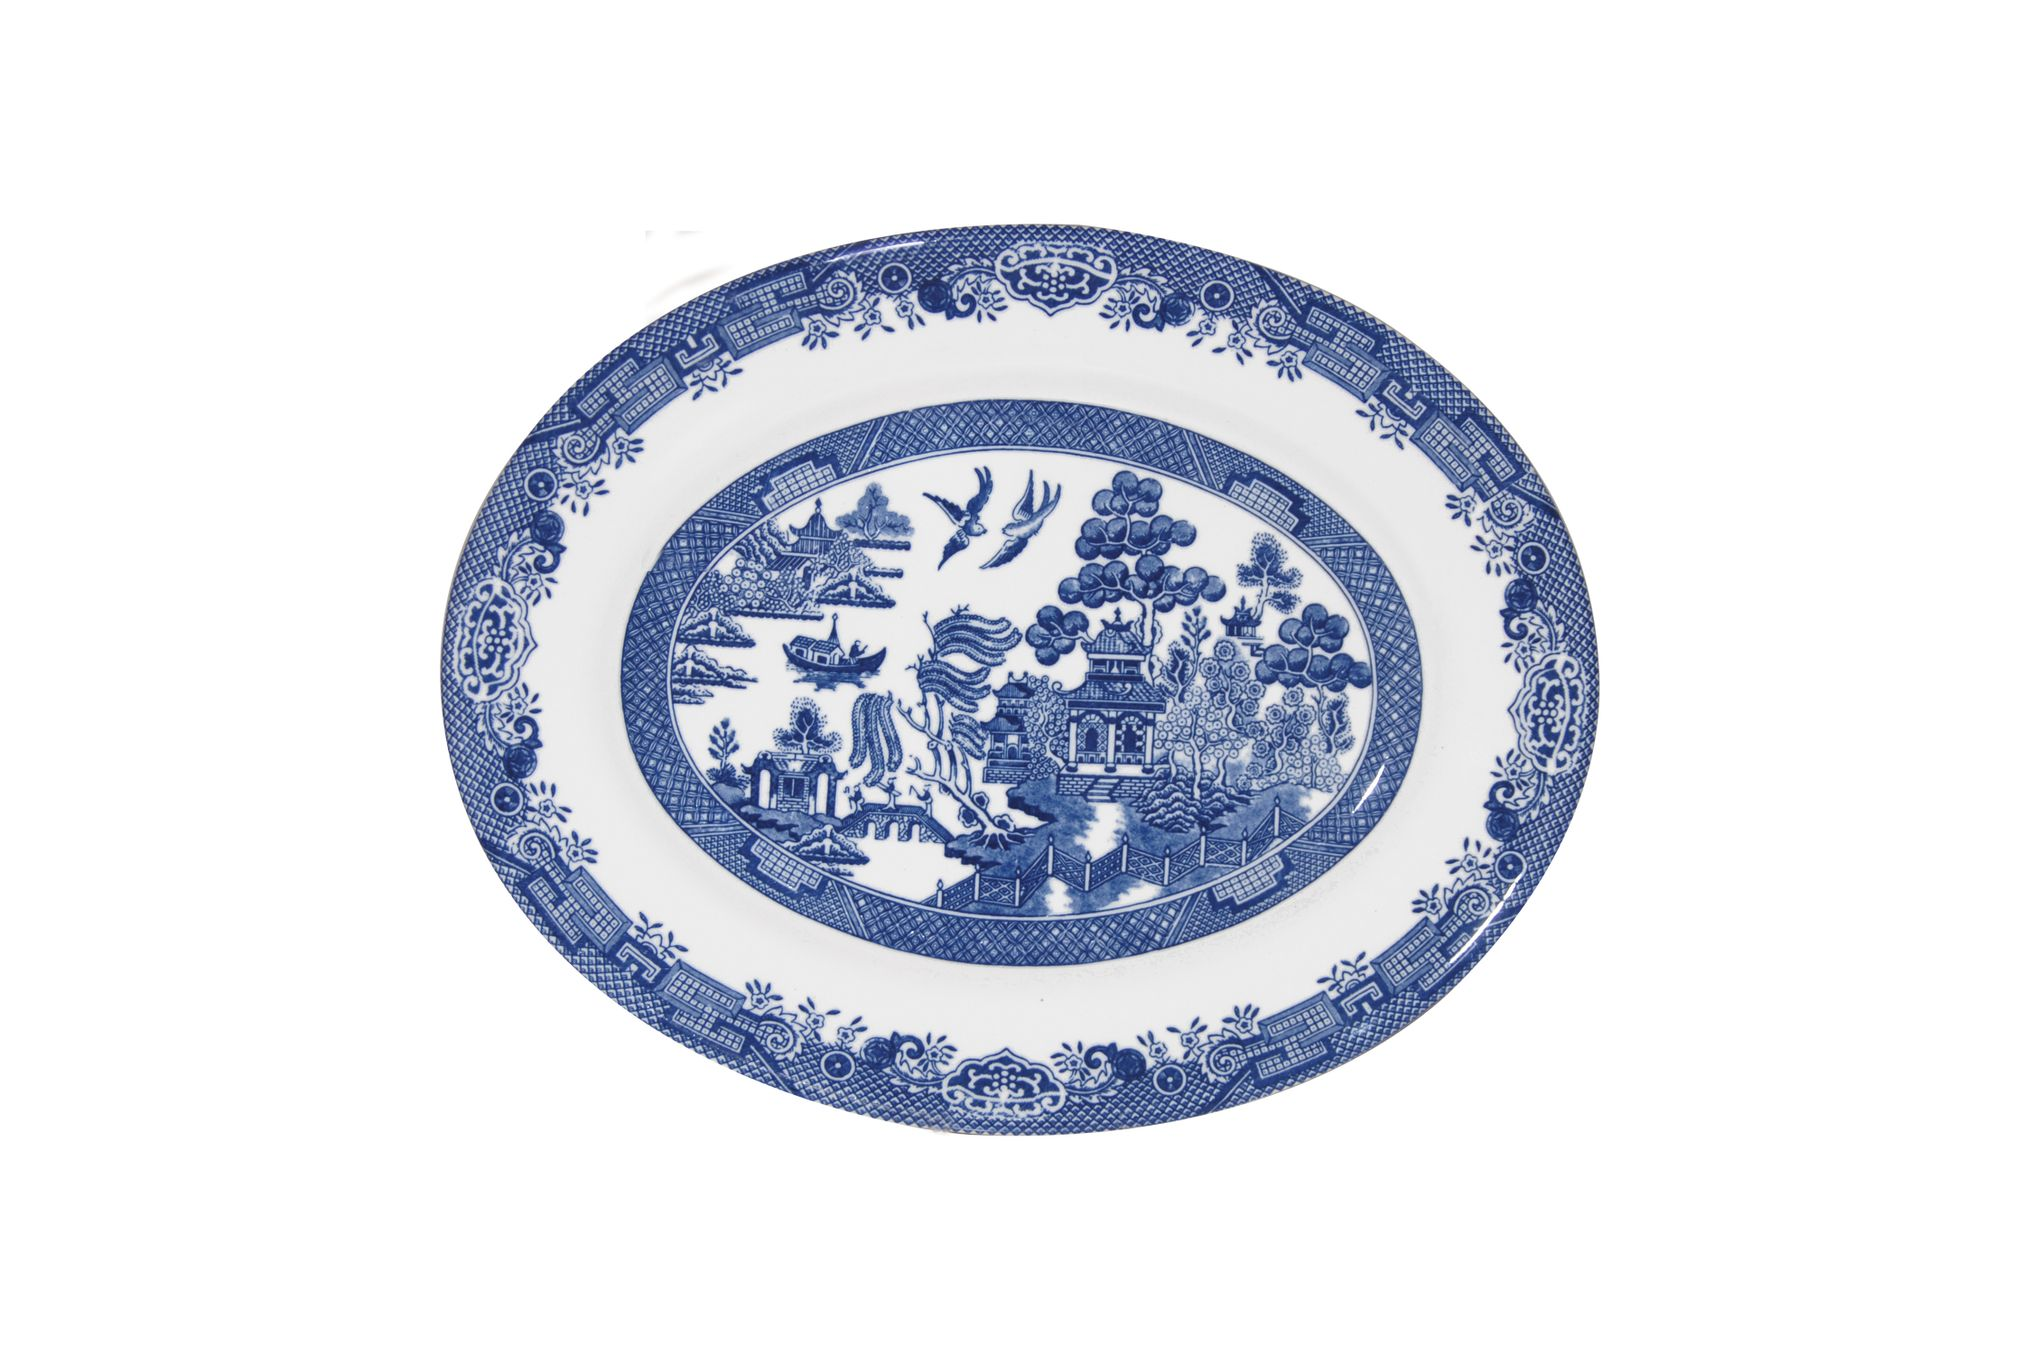 "Churchill Blue Willow Oval Plate / Platter 12 1/4"" thumb 1"